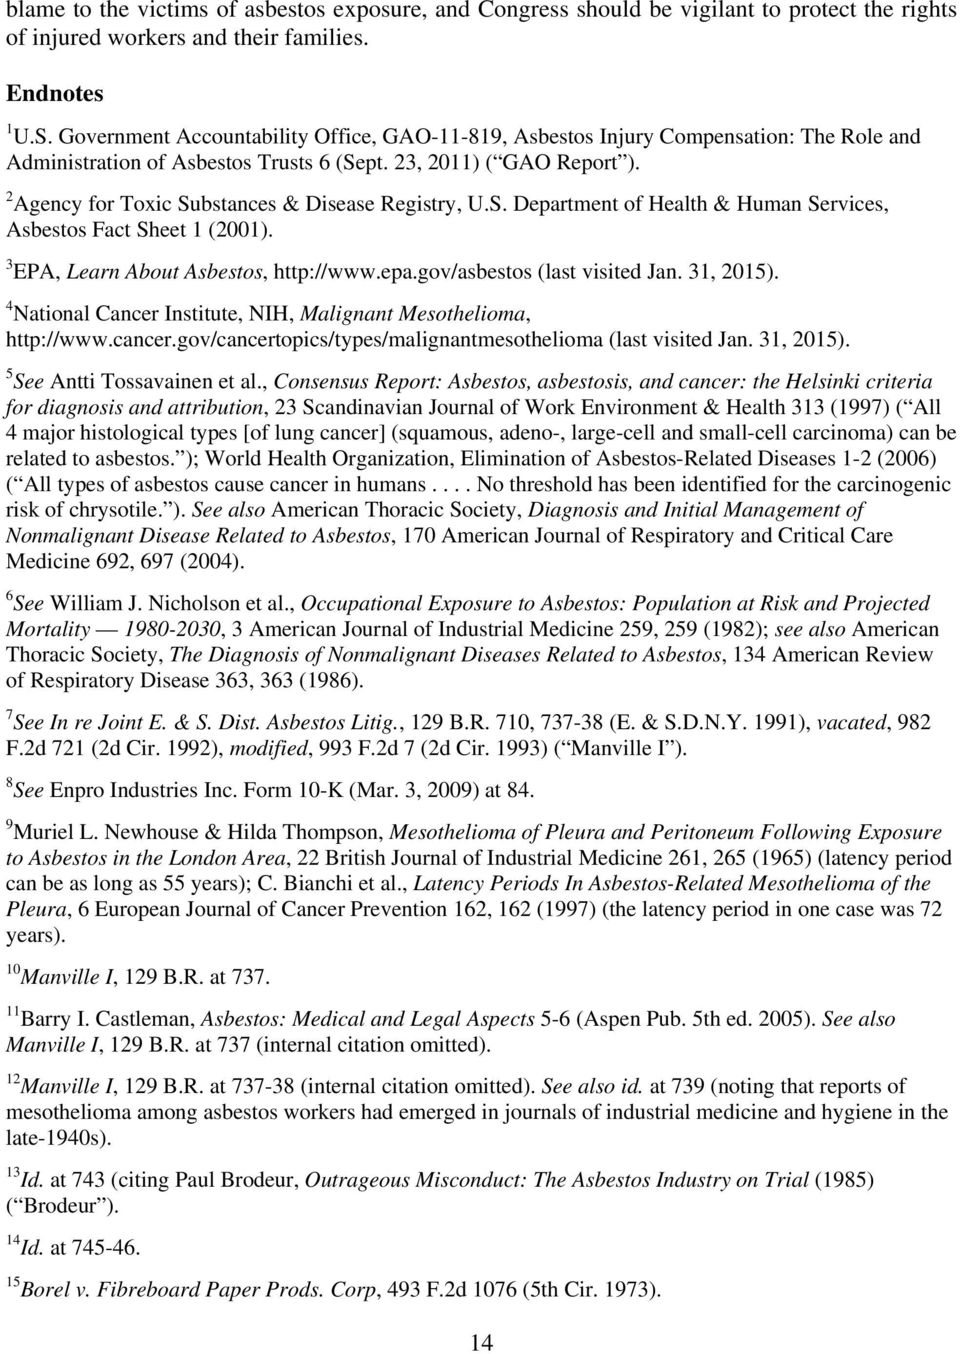 2 Agency for Toxic Substances & Disease Registry, U.S. Department of Health & Human Services, Asbestos Fact Sheet 1 (2001). 3 EPA, Learn About Asbestos, http://www.epa.gov/asbestos (last visited Jan.